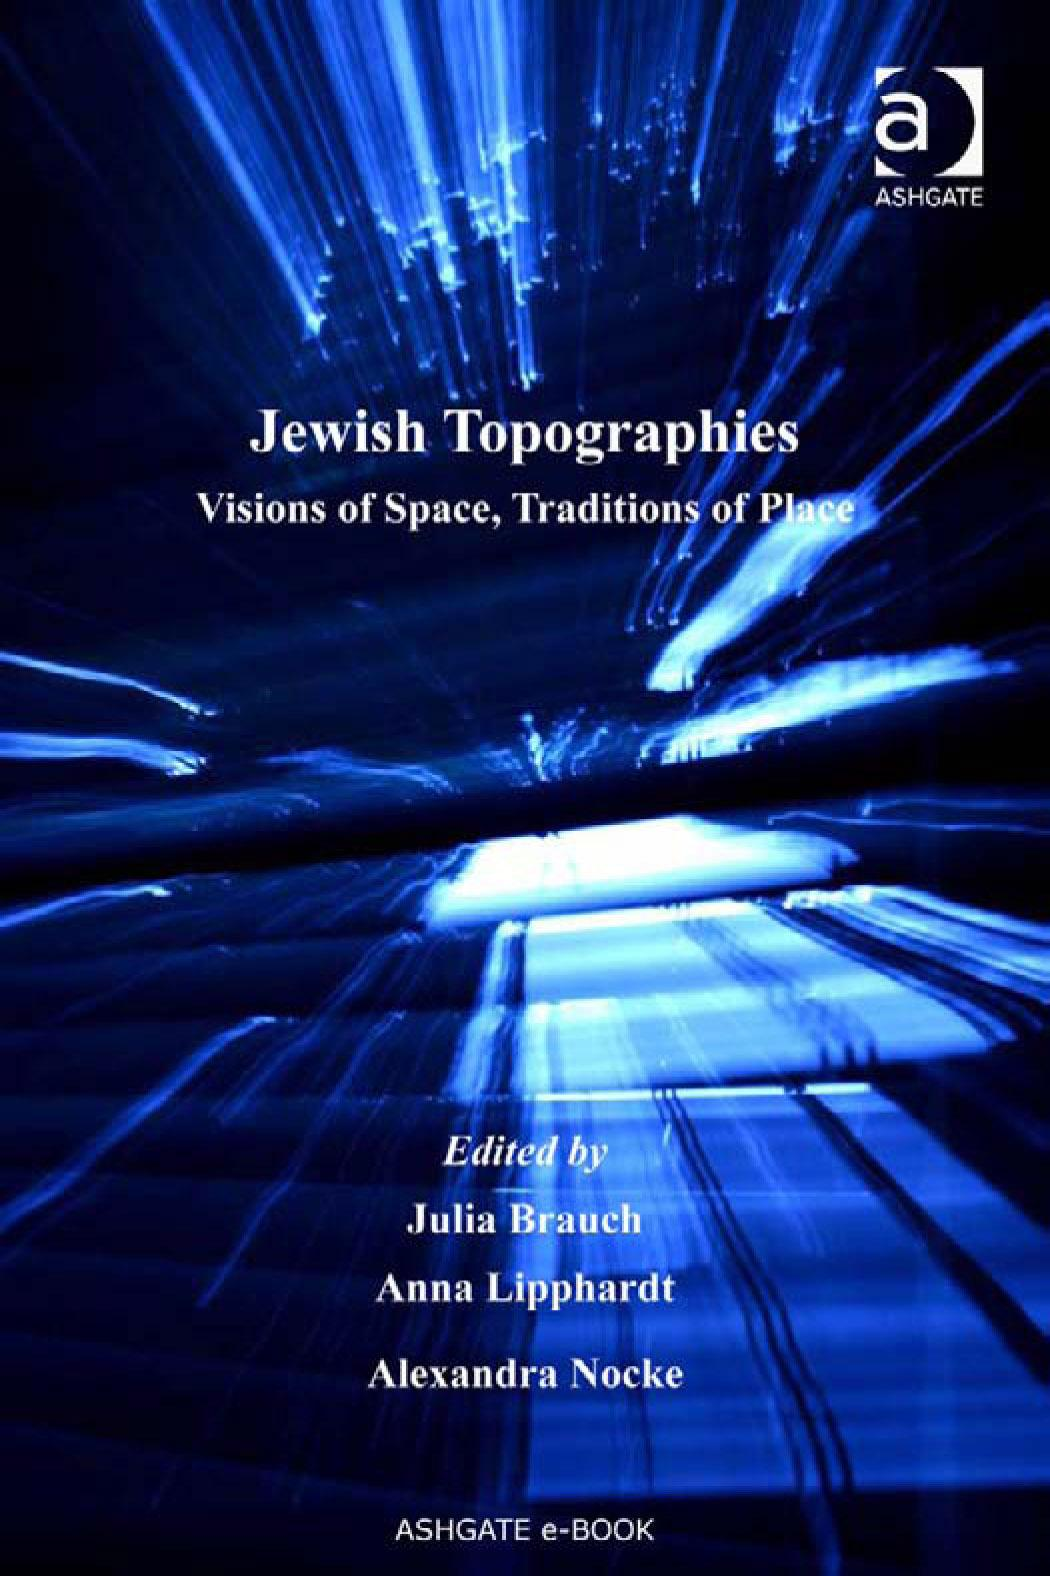 Jewish Topographies: Visions of Space, Traditions of Place